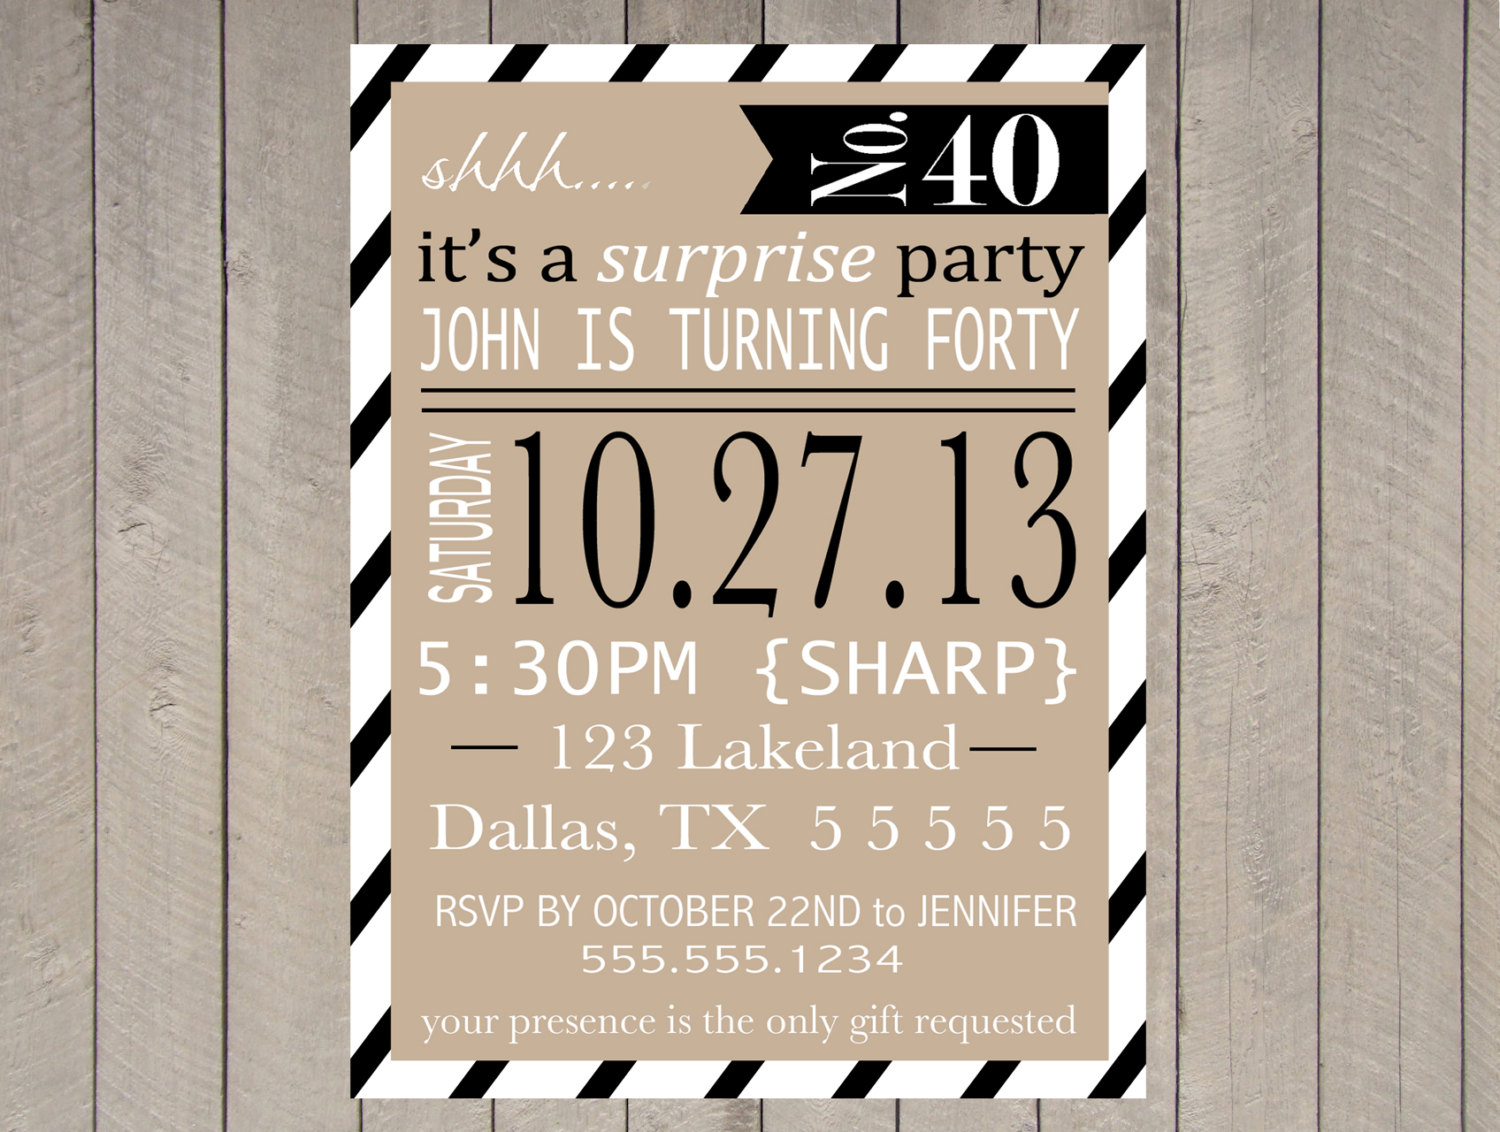 free printable 40th birthday party invitation templates ; 1583a7d5999e3f4cc14a6a45303e695c